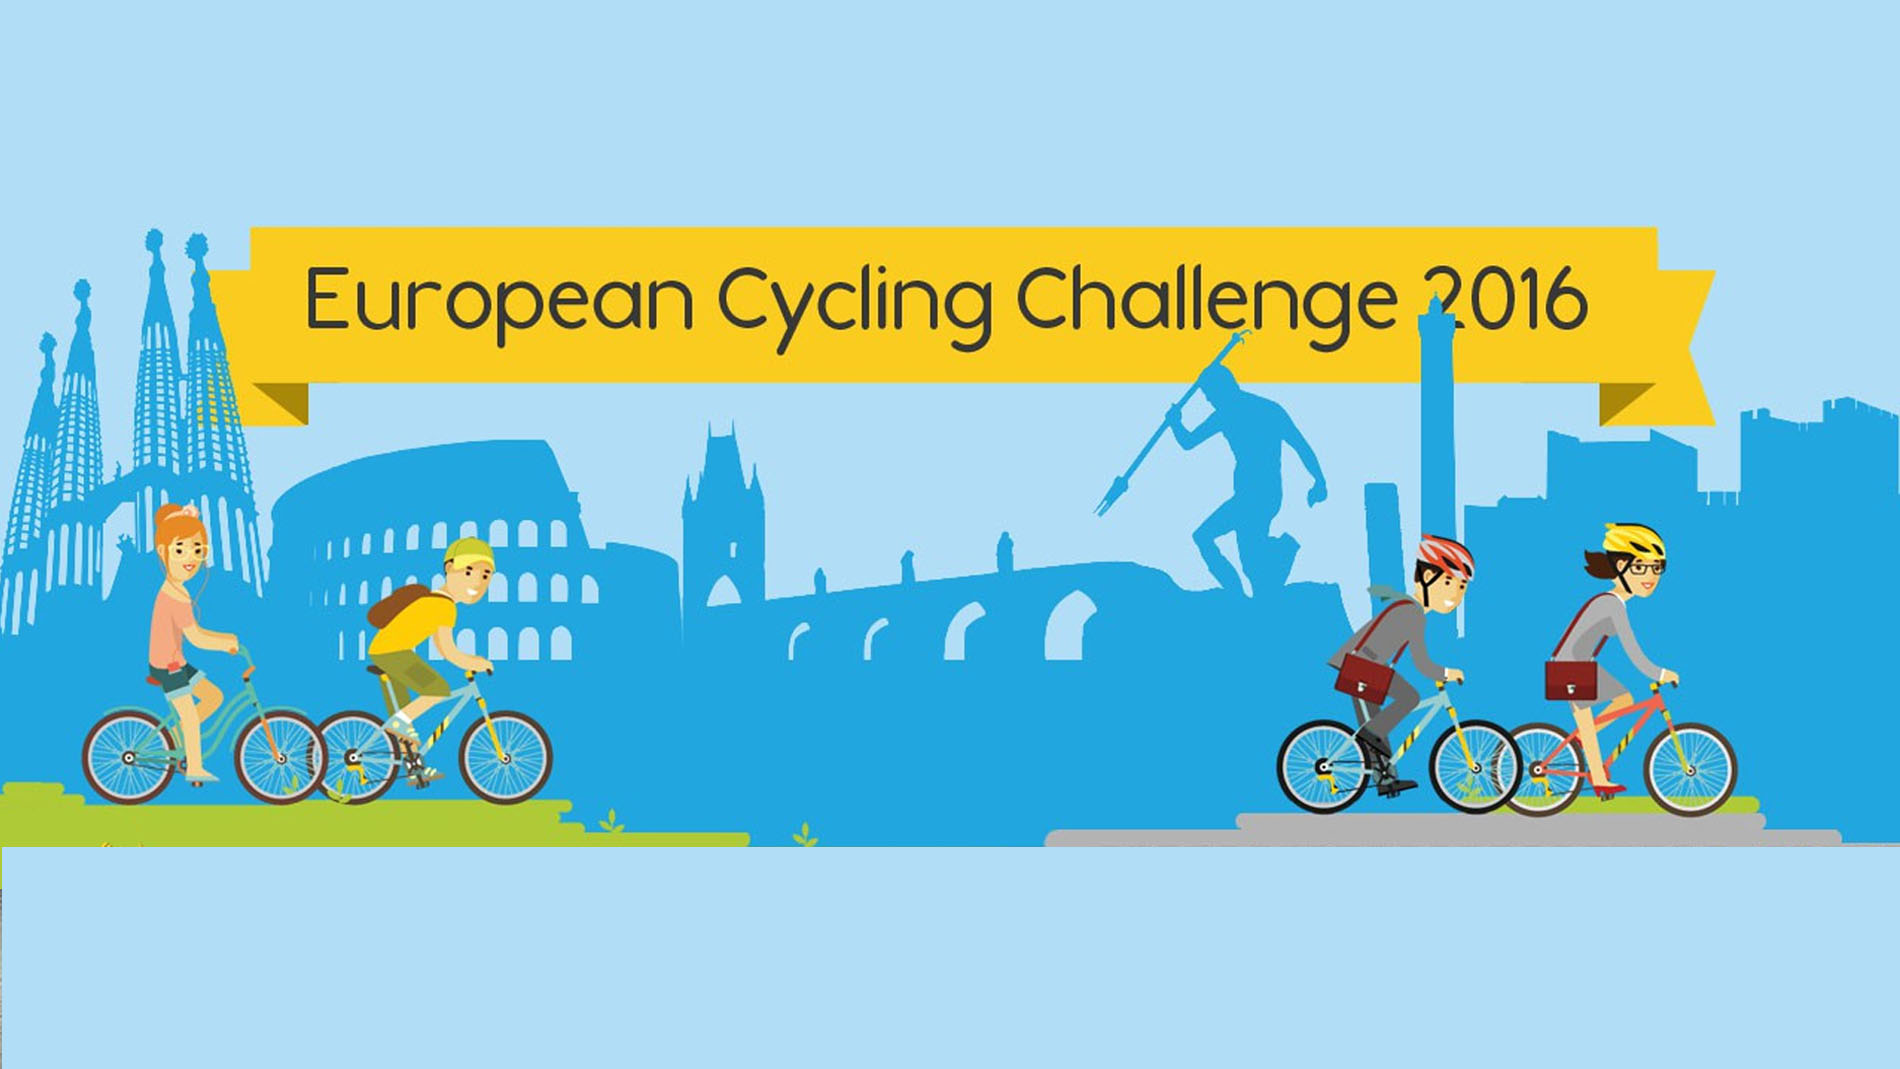 European Cycling Challenge 2016